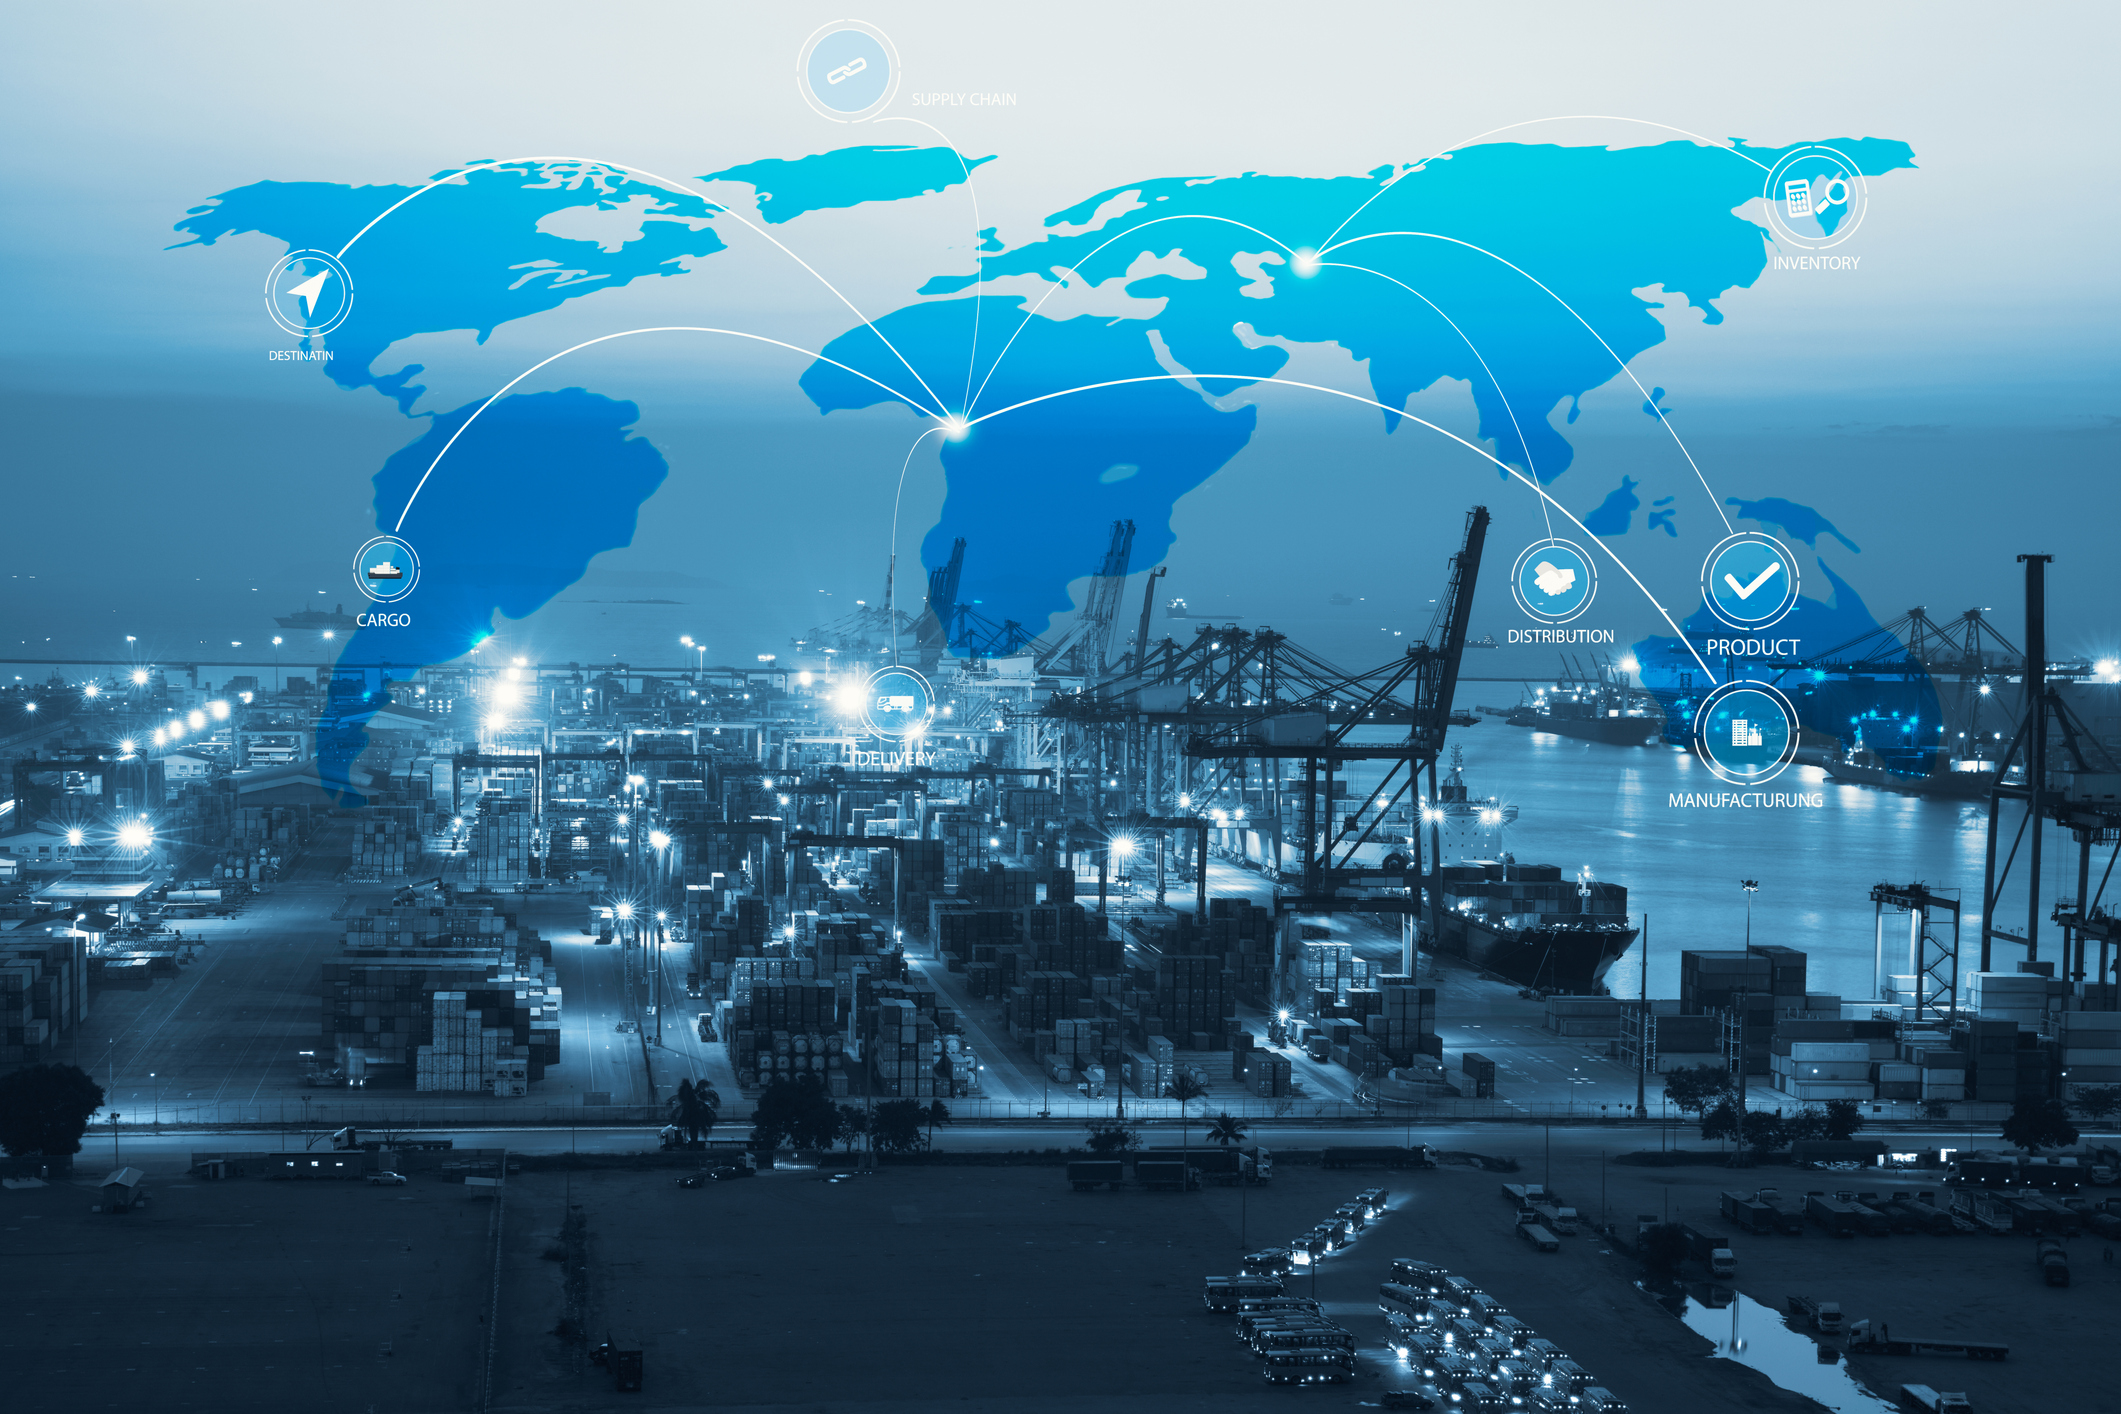 Supply chain management: Is it time you evolved your approach?